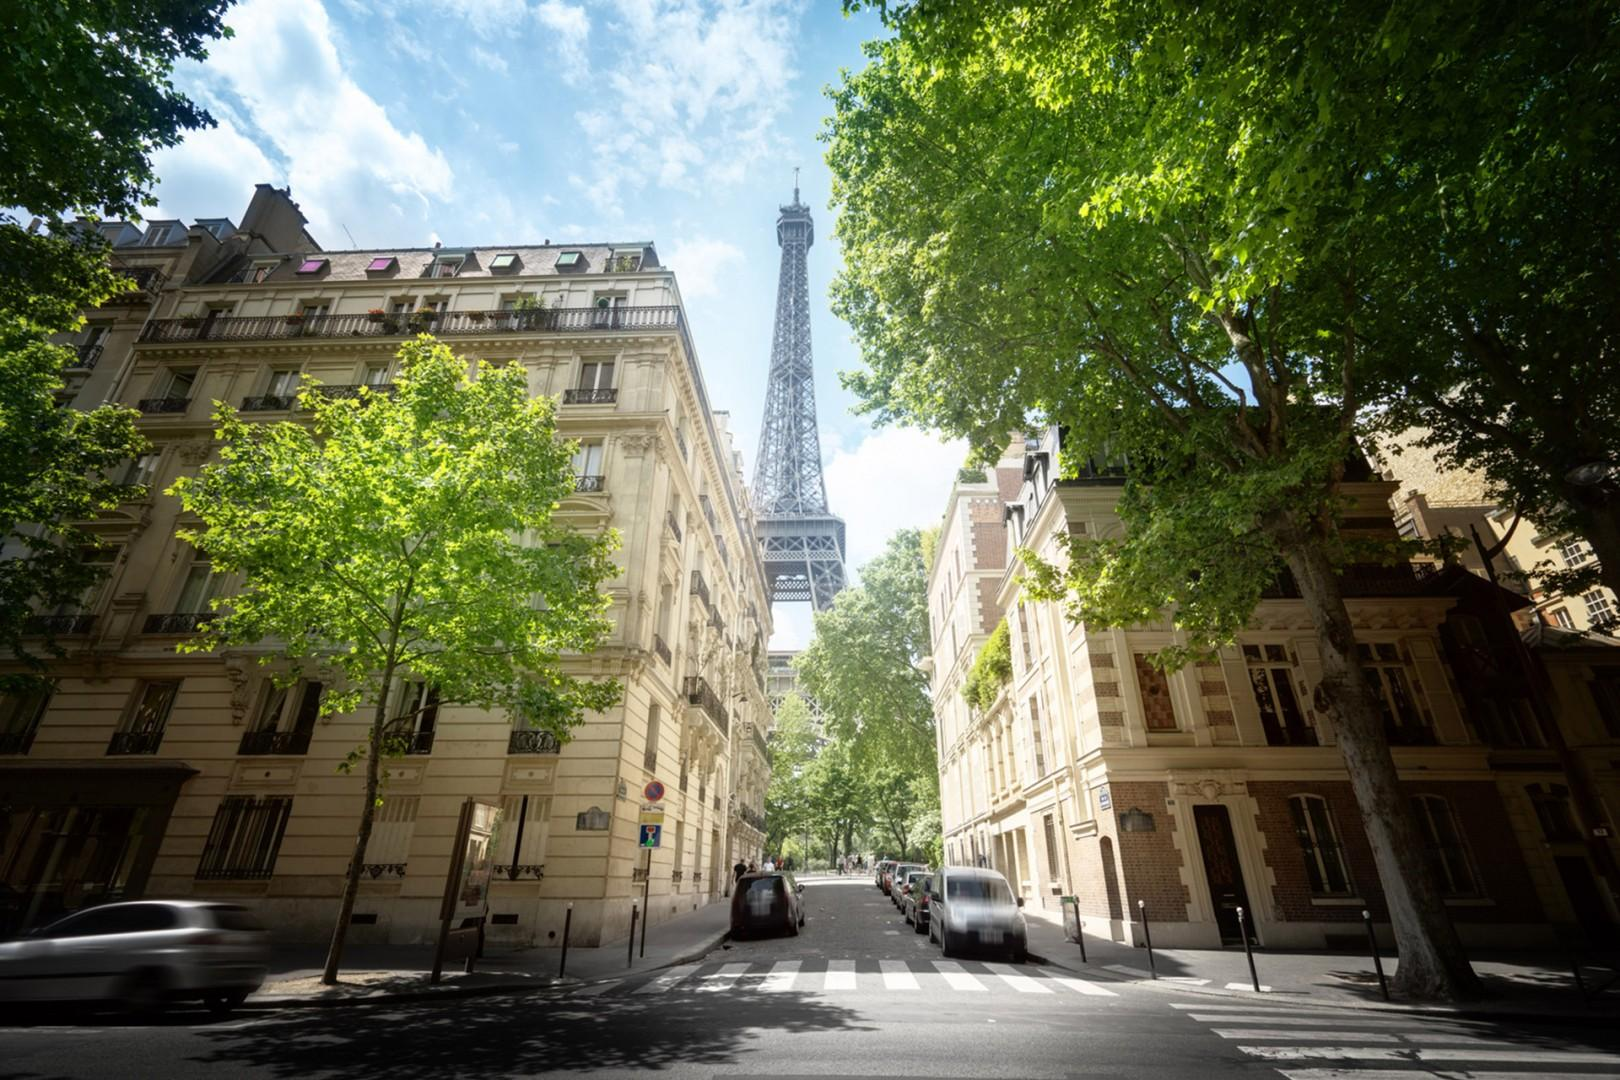 You will love this location two blocks from the Eiffel Tower!